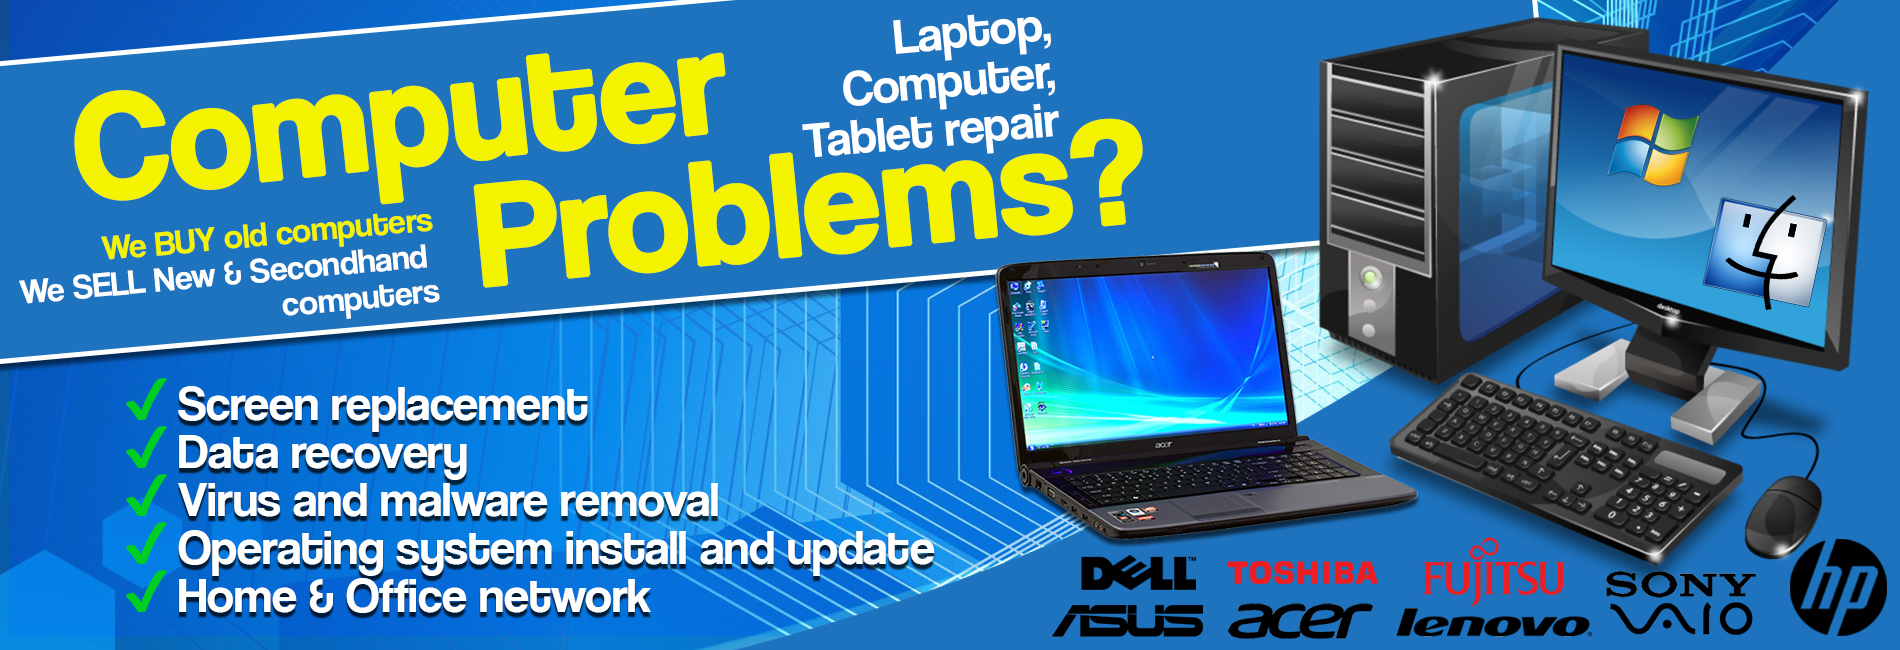 PC-Laptop-Computer-Repair-baltimore